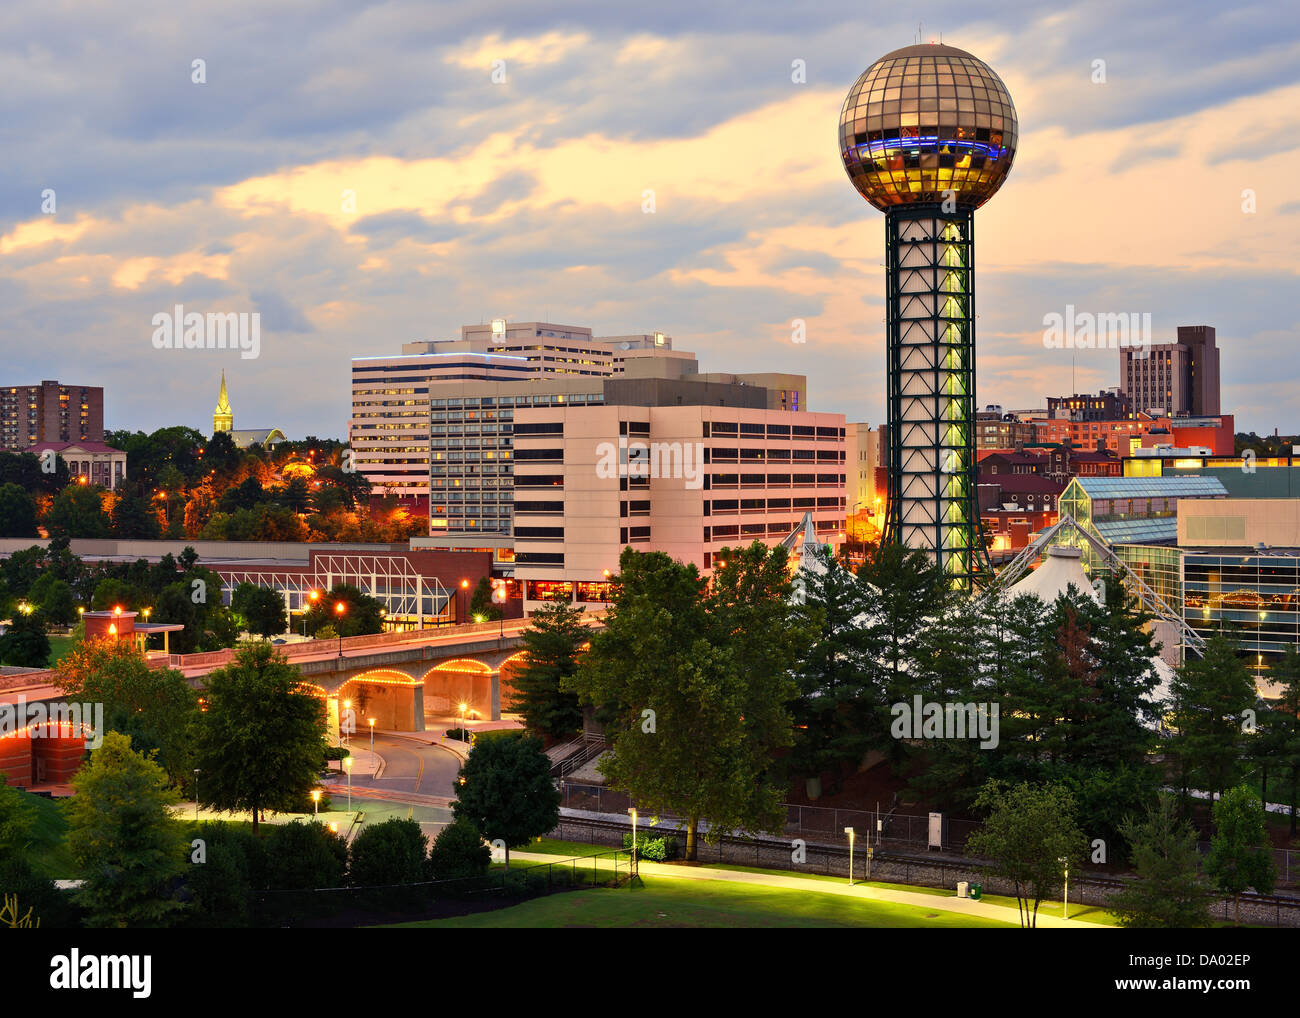 Skyline of downtown Knoxville, Tennessee, USA. - Stock Image